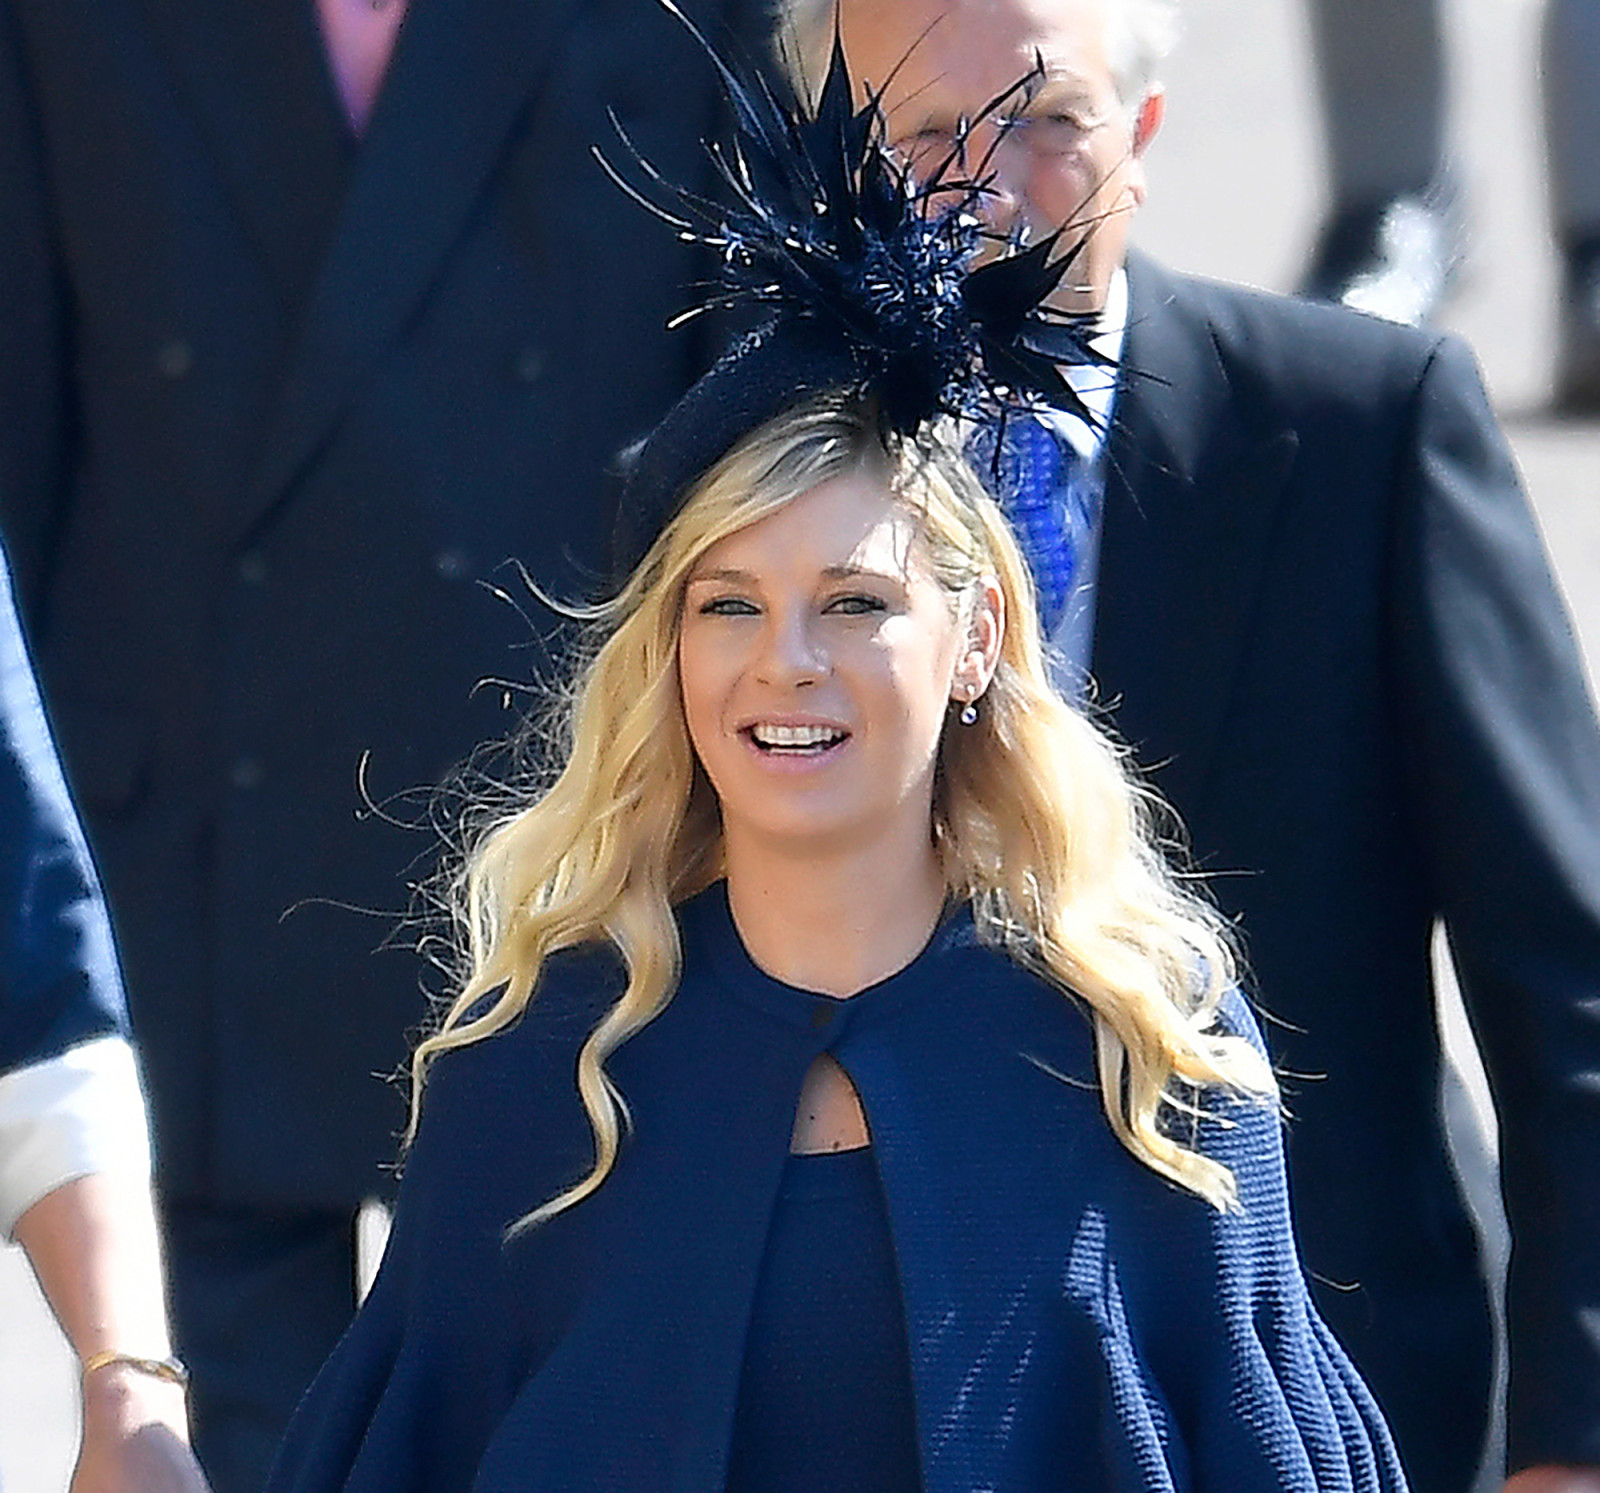 chelsy-davy-wildest-fascinators-royal-wedding